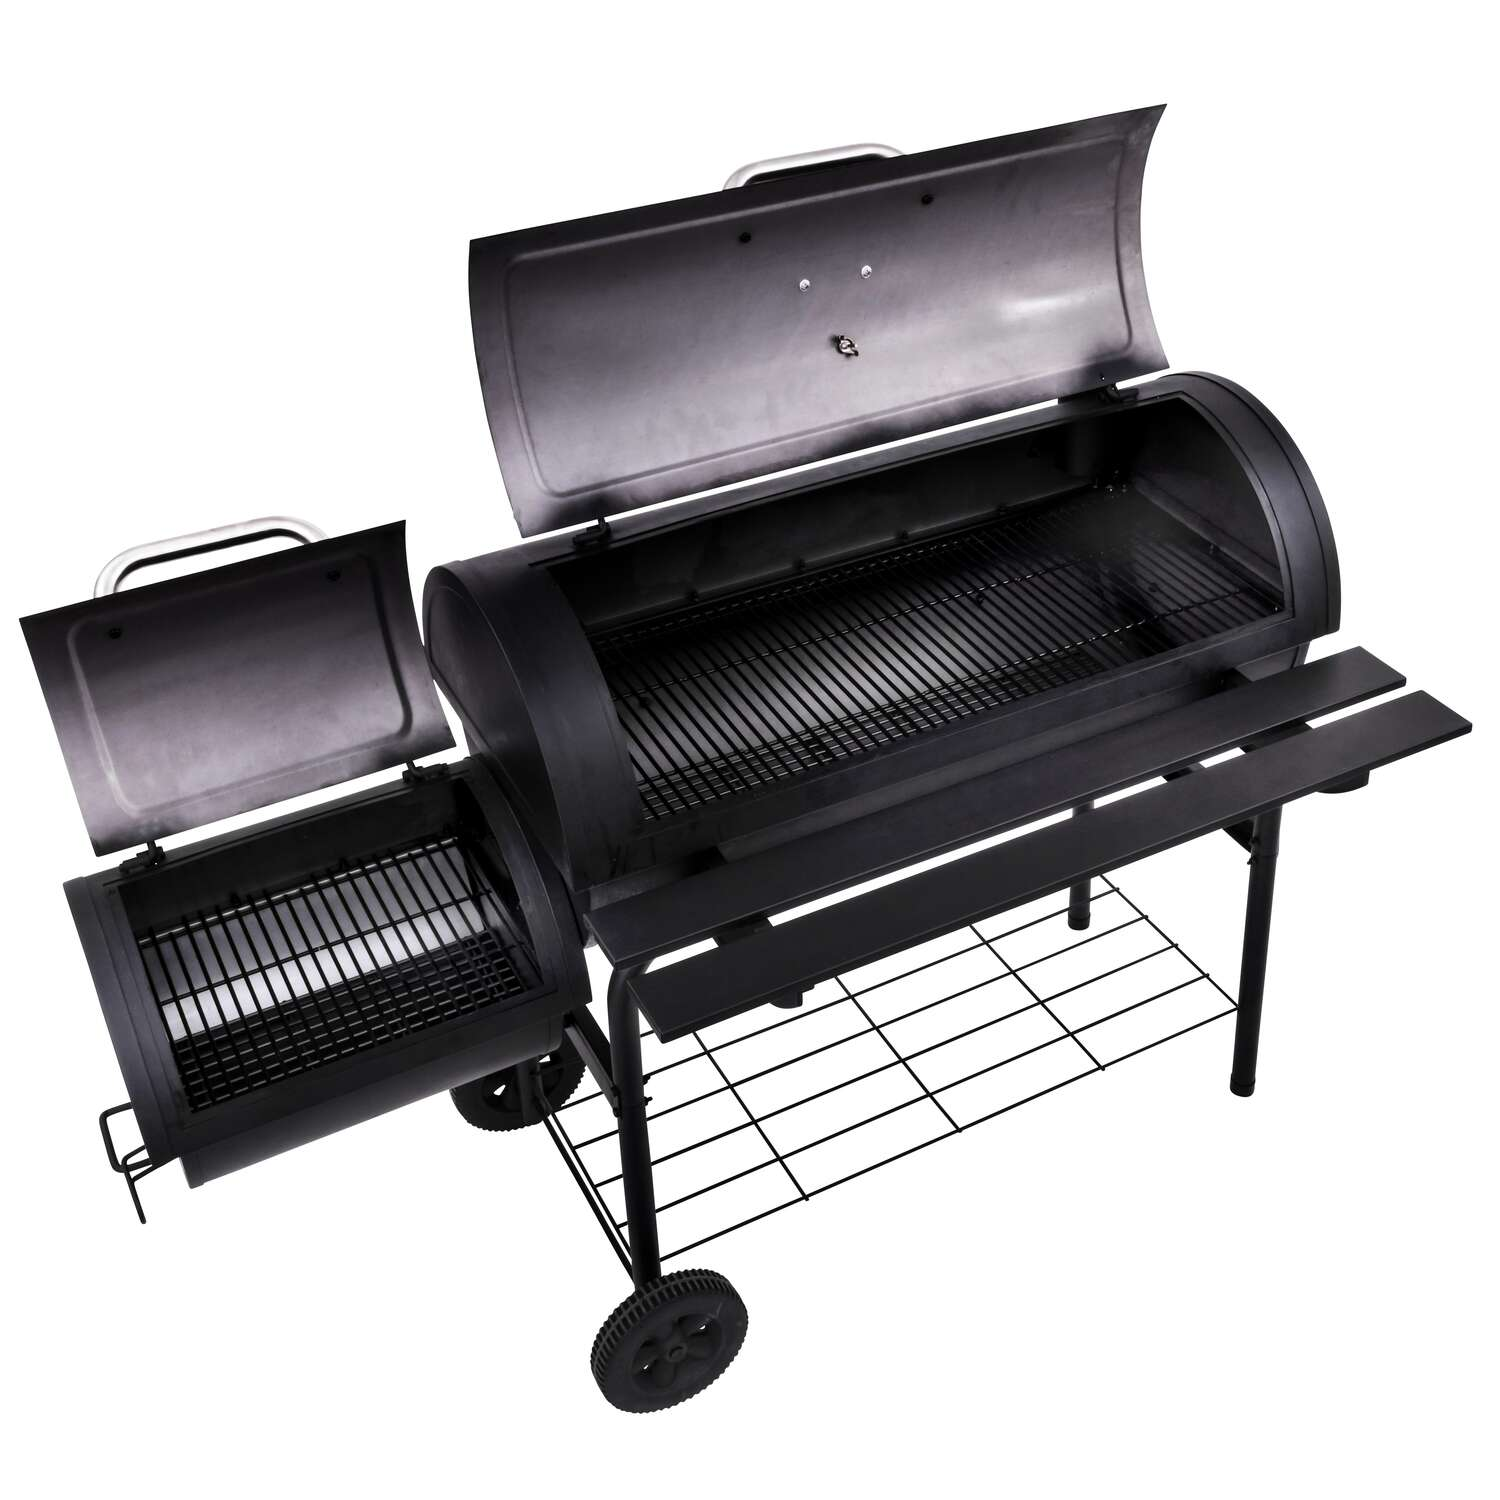 Char-Broil  American Gourmet  Charcoal  57.87 in. W Offset Smoker  Black